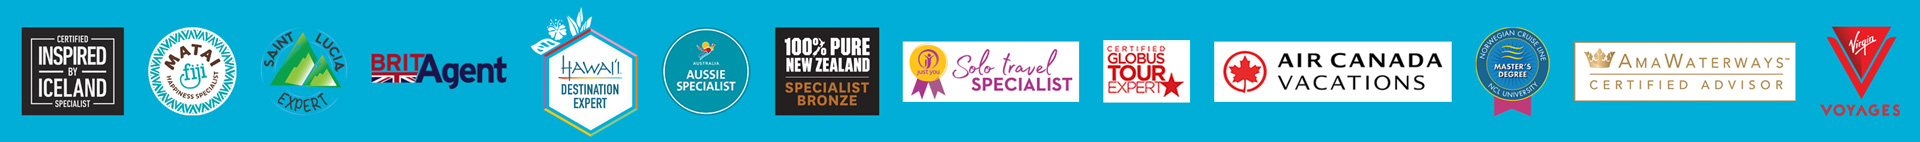 Desitination Specialties, Travel Supplier Certifications, Preferred Travel Partners